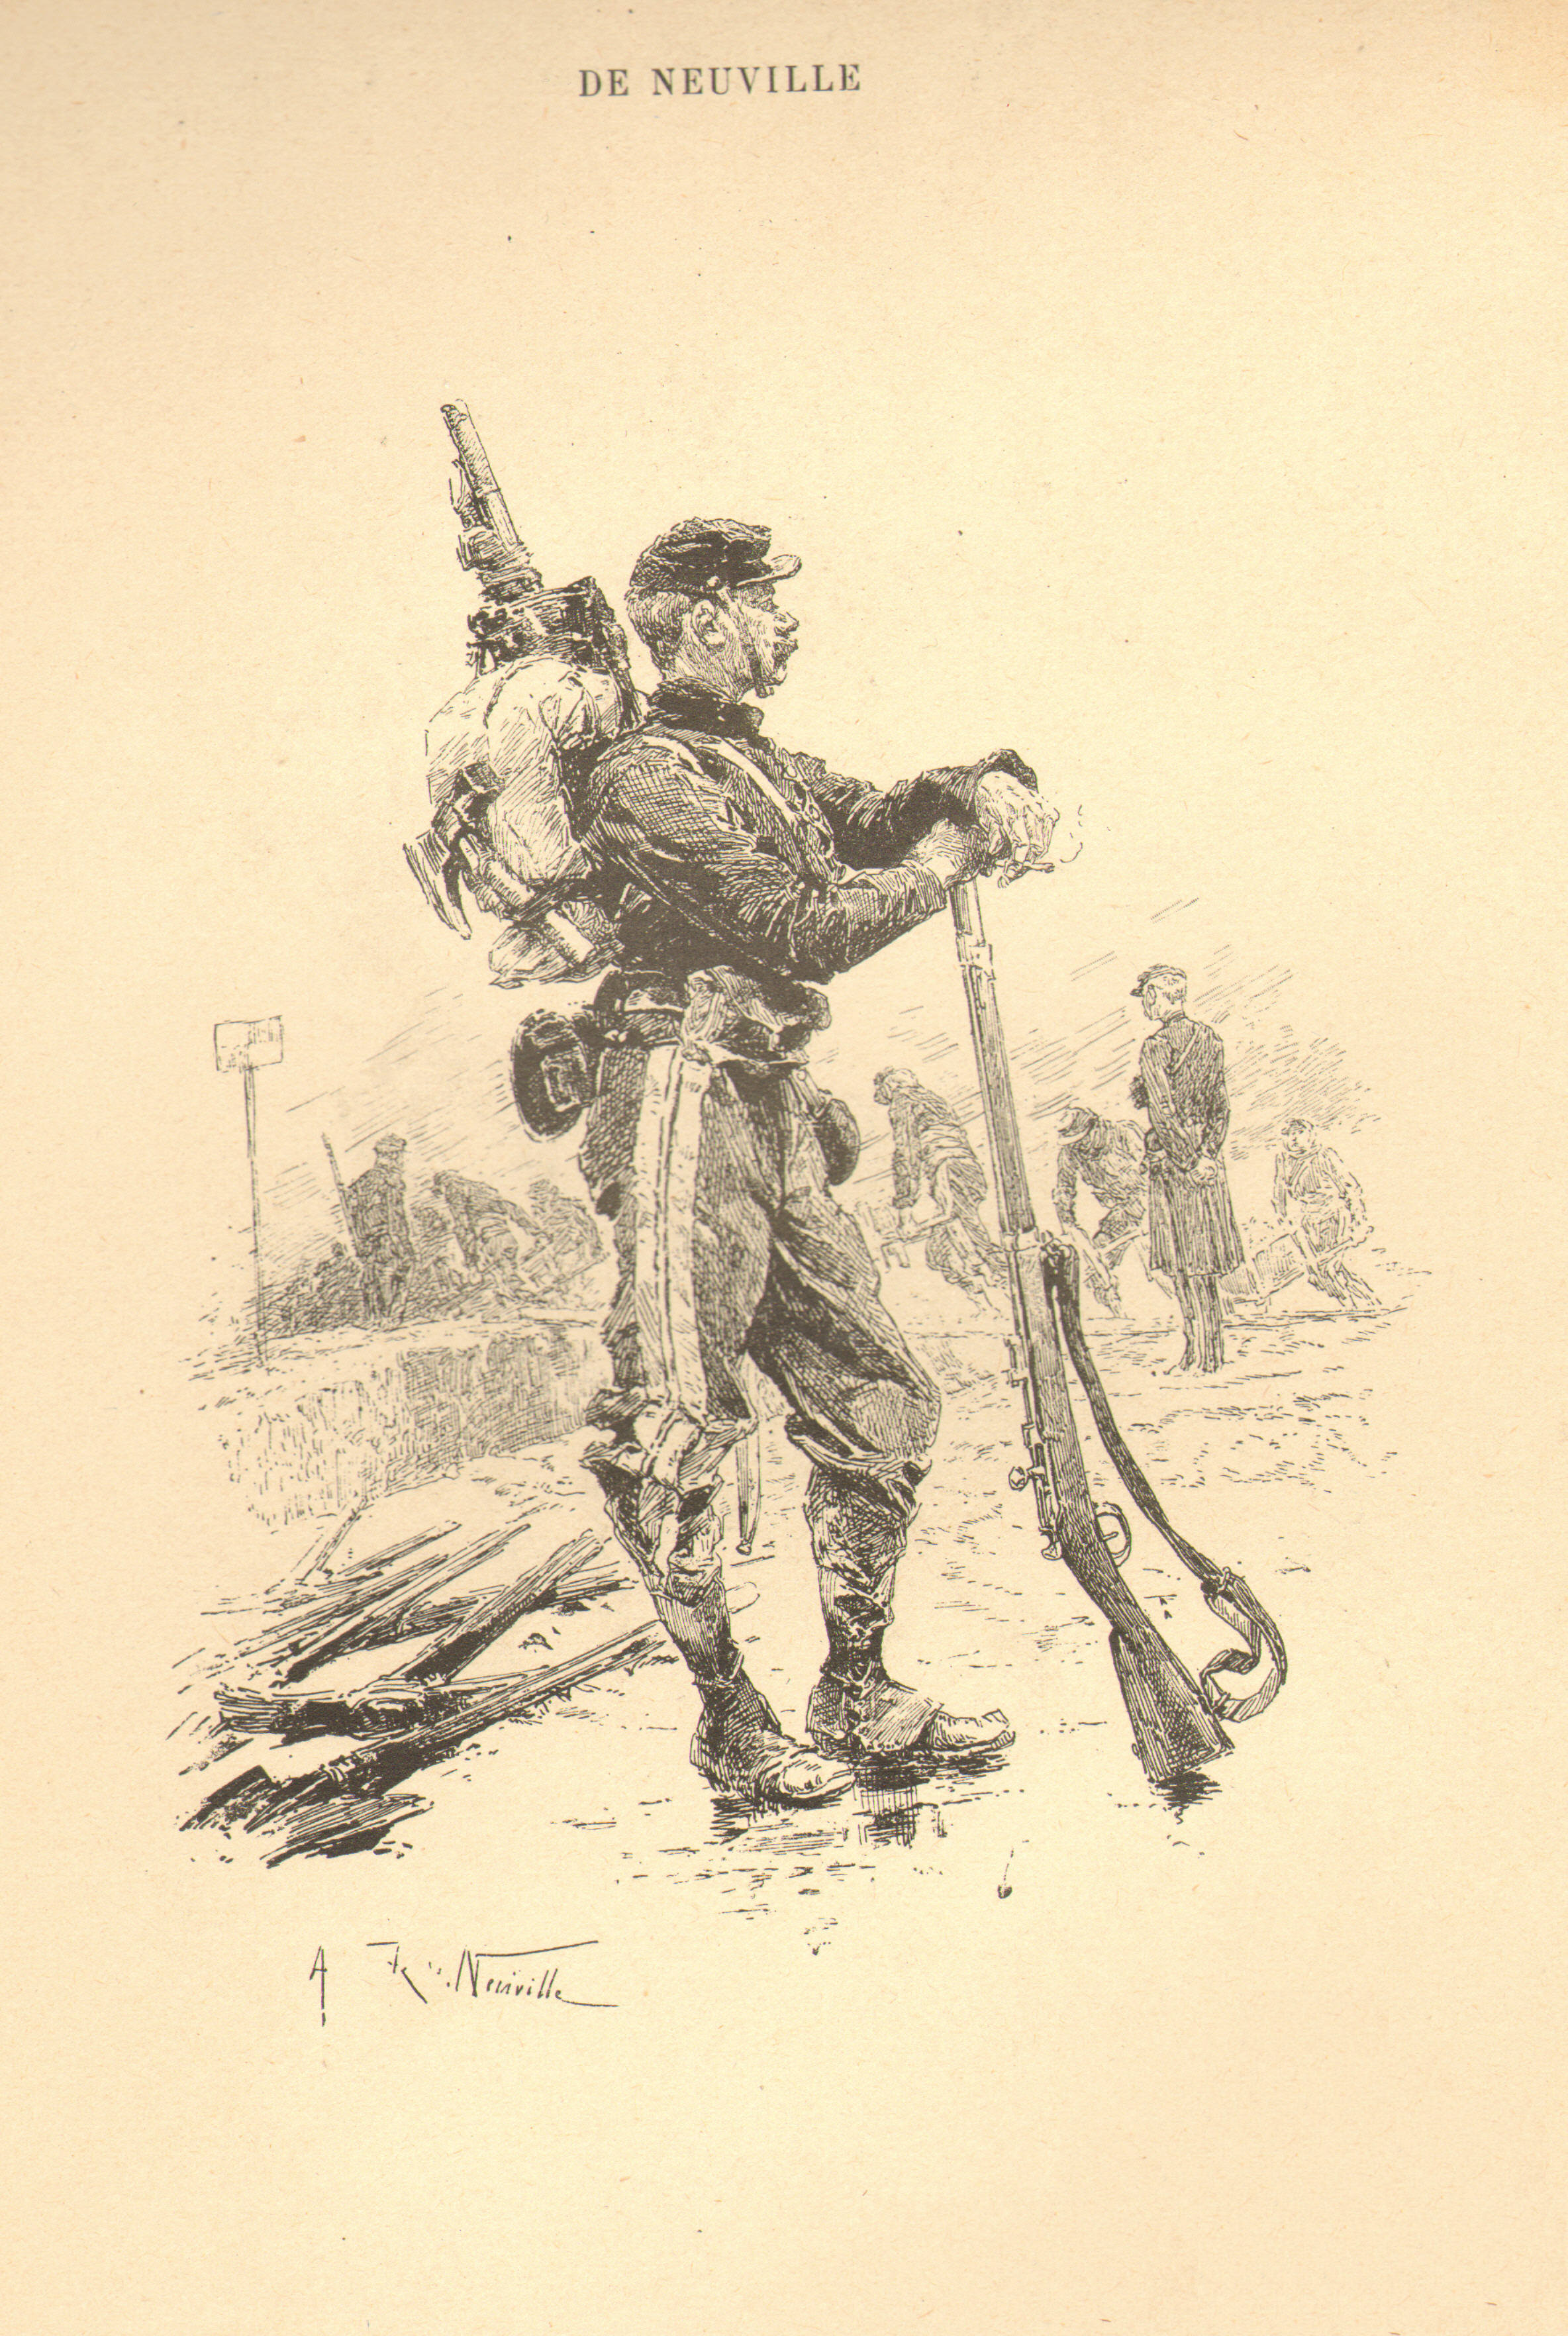 A French Military Engineer by Alphonse Marie Adolphe de Neuville pencil